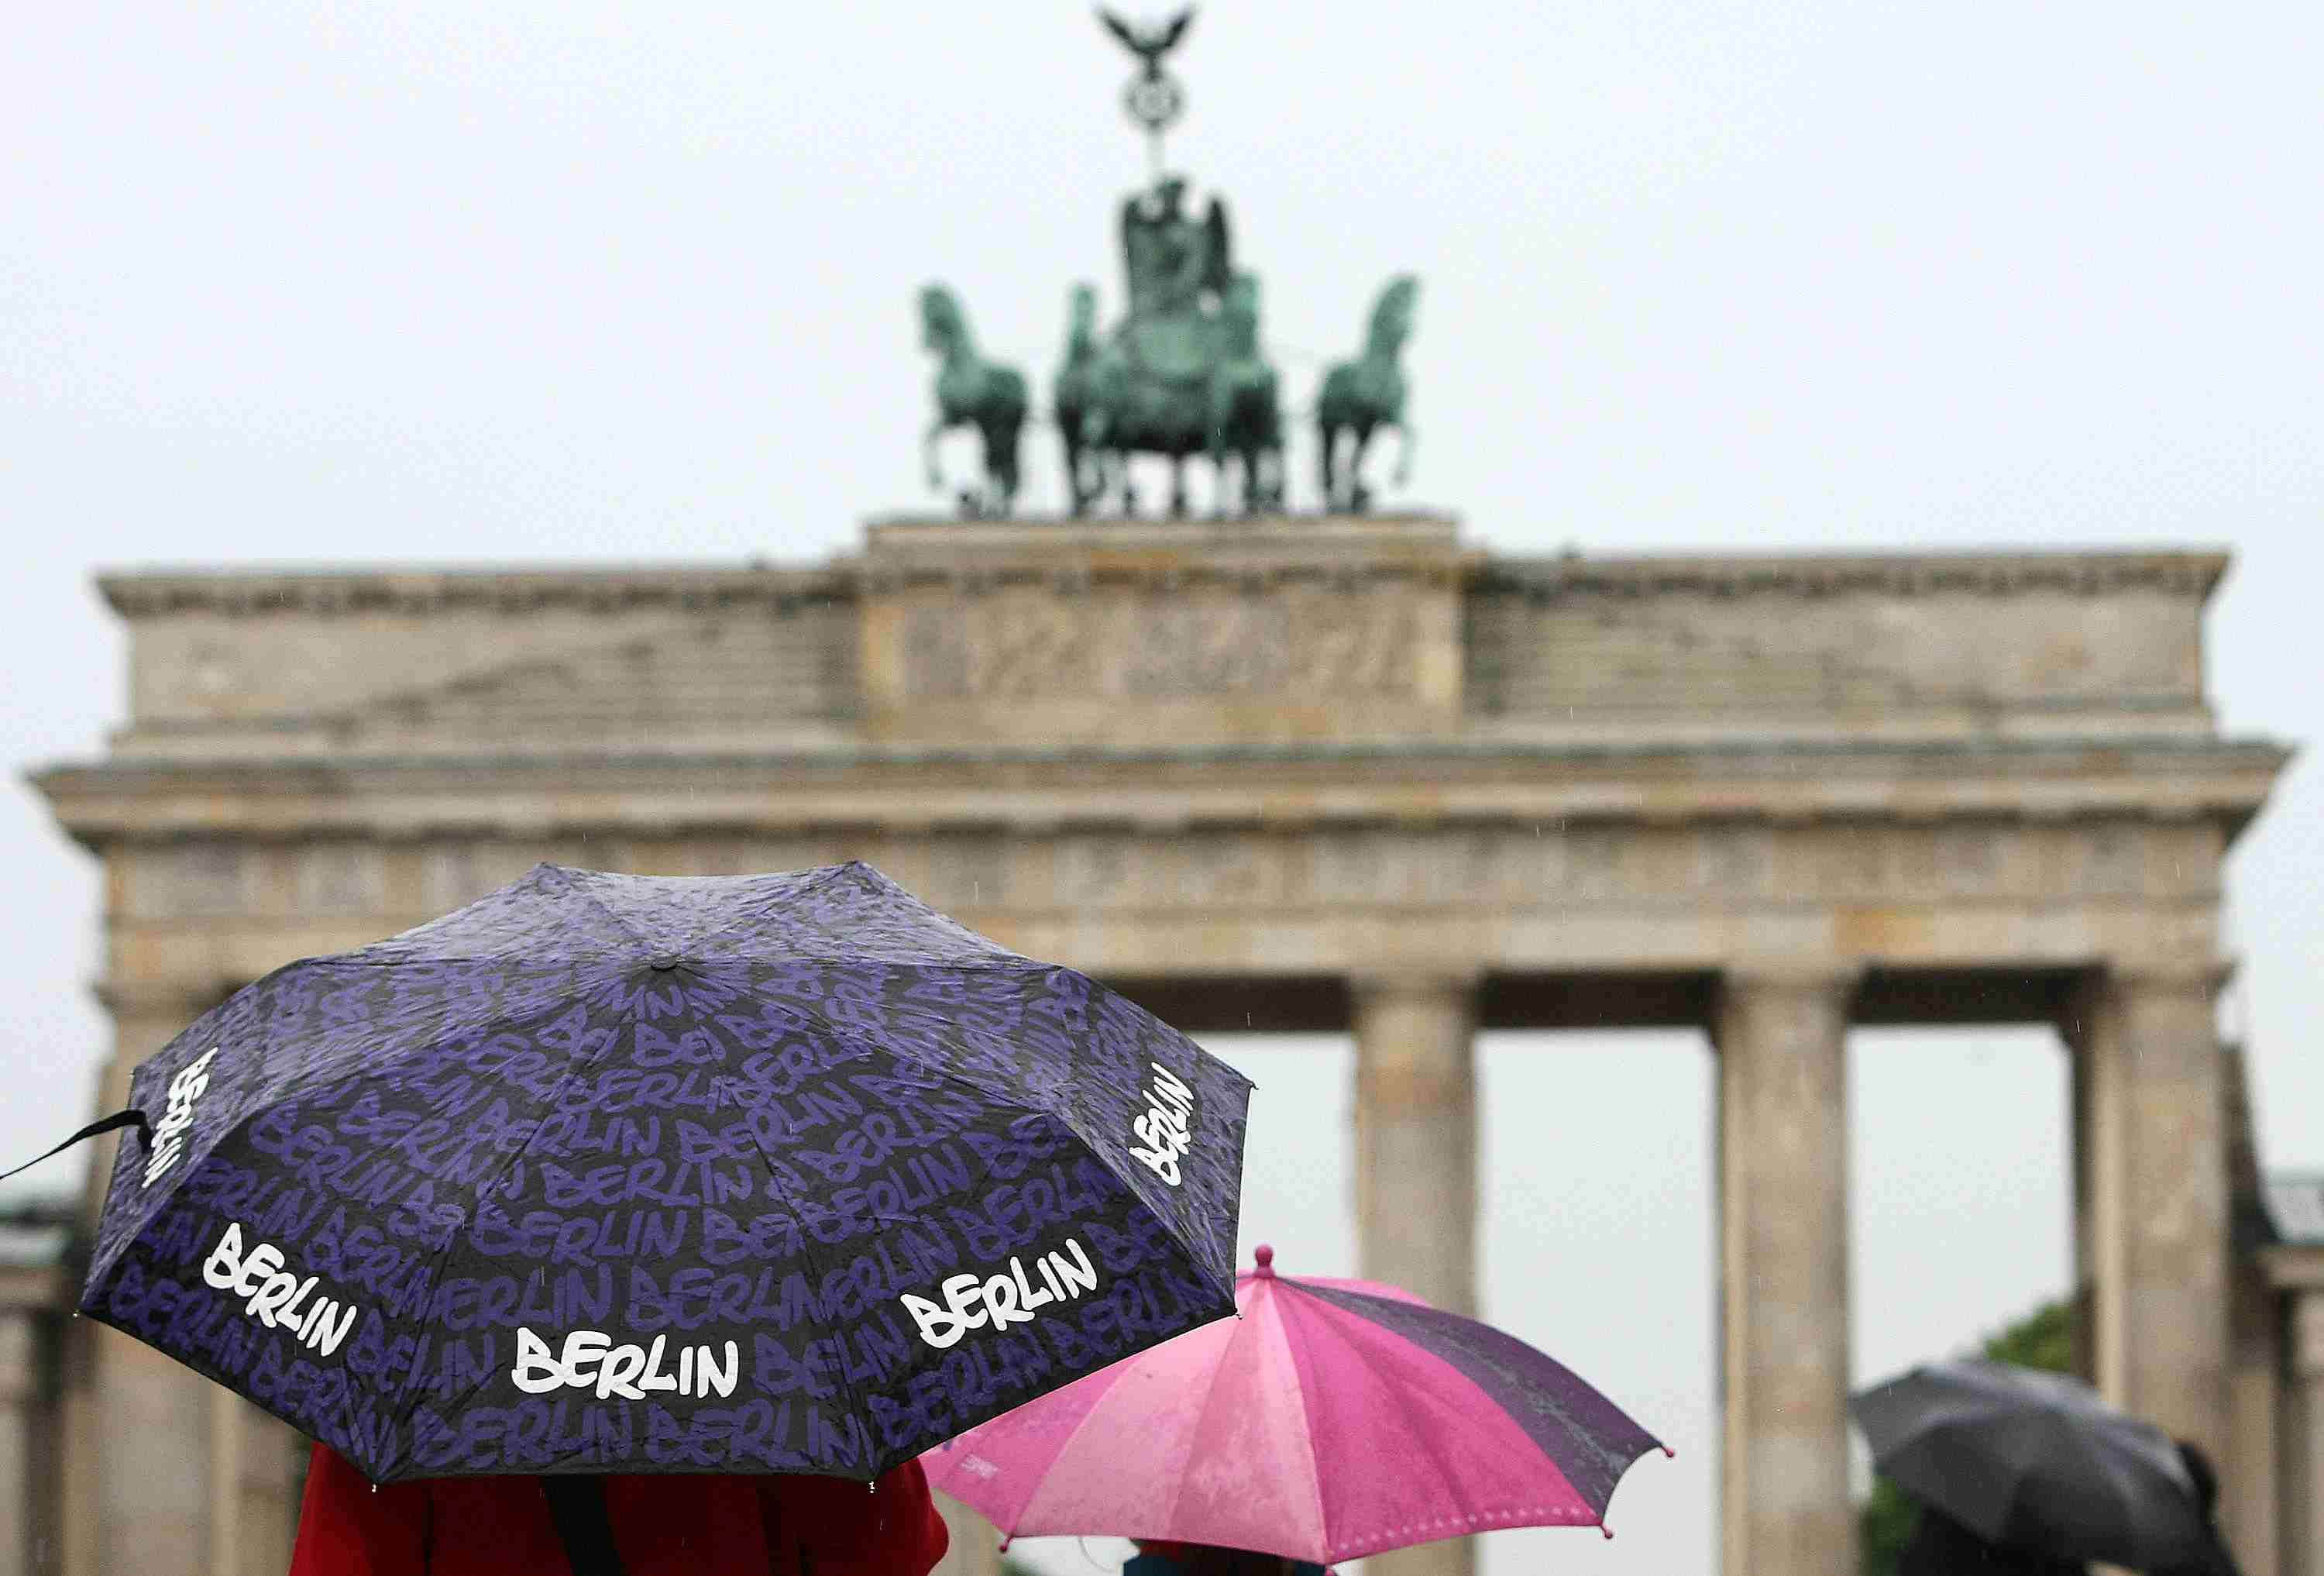 Umbrellas on a rainy day in Germany.